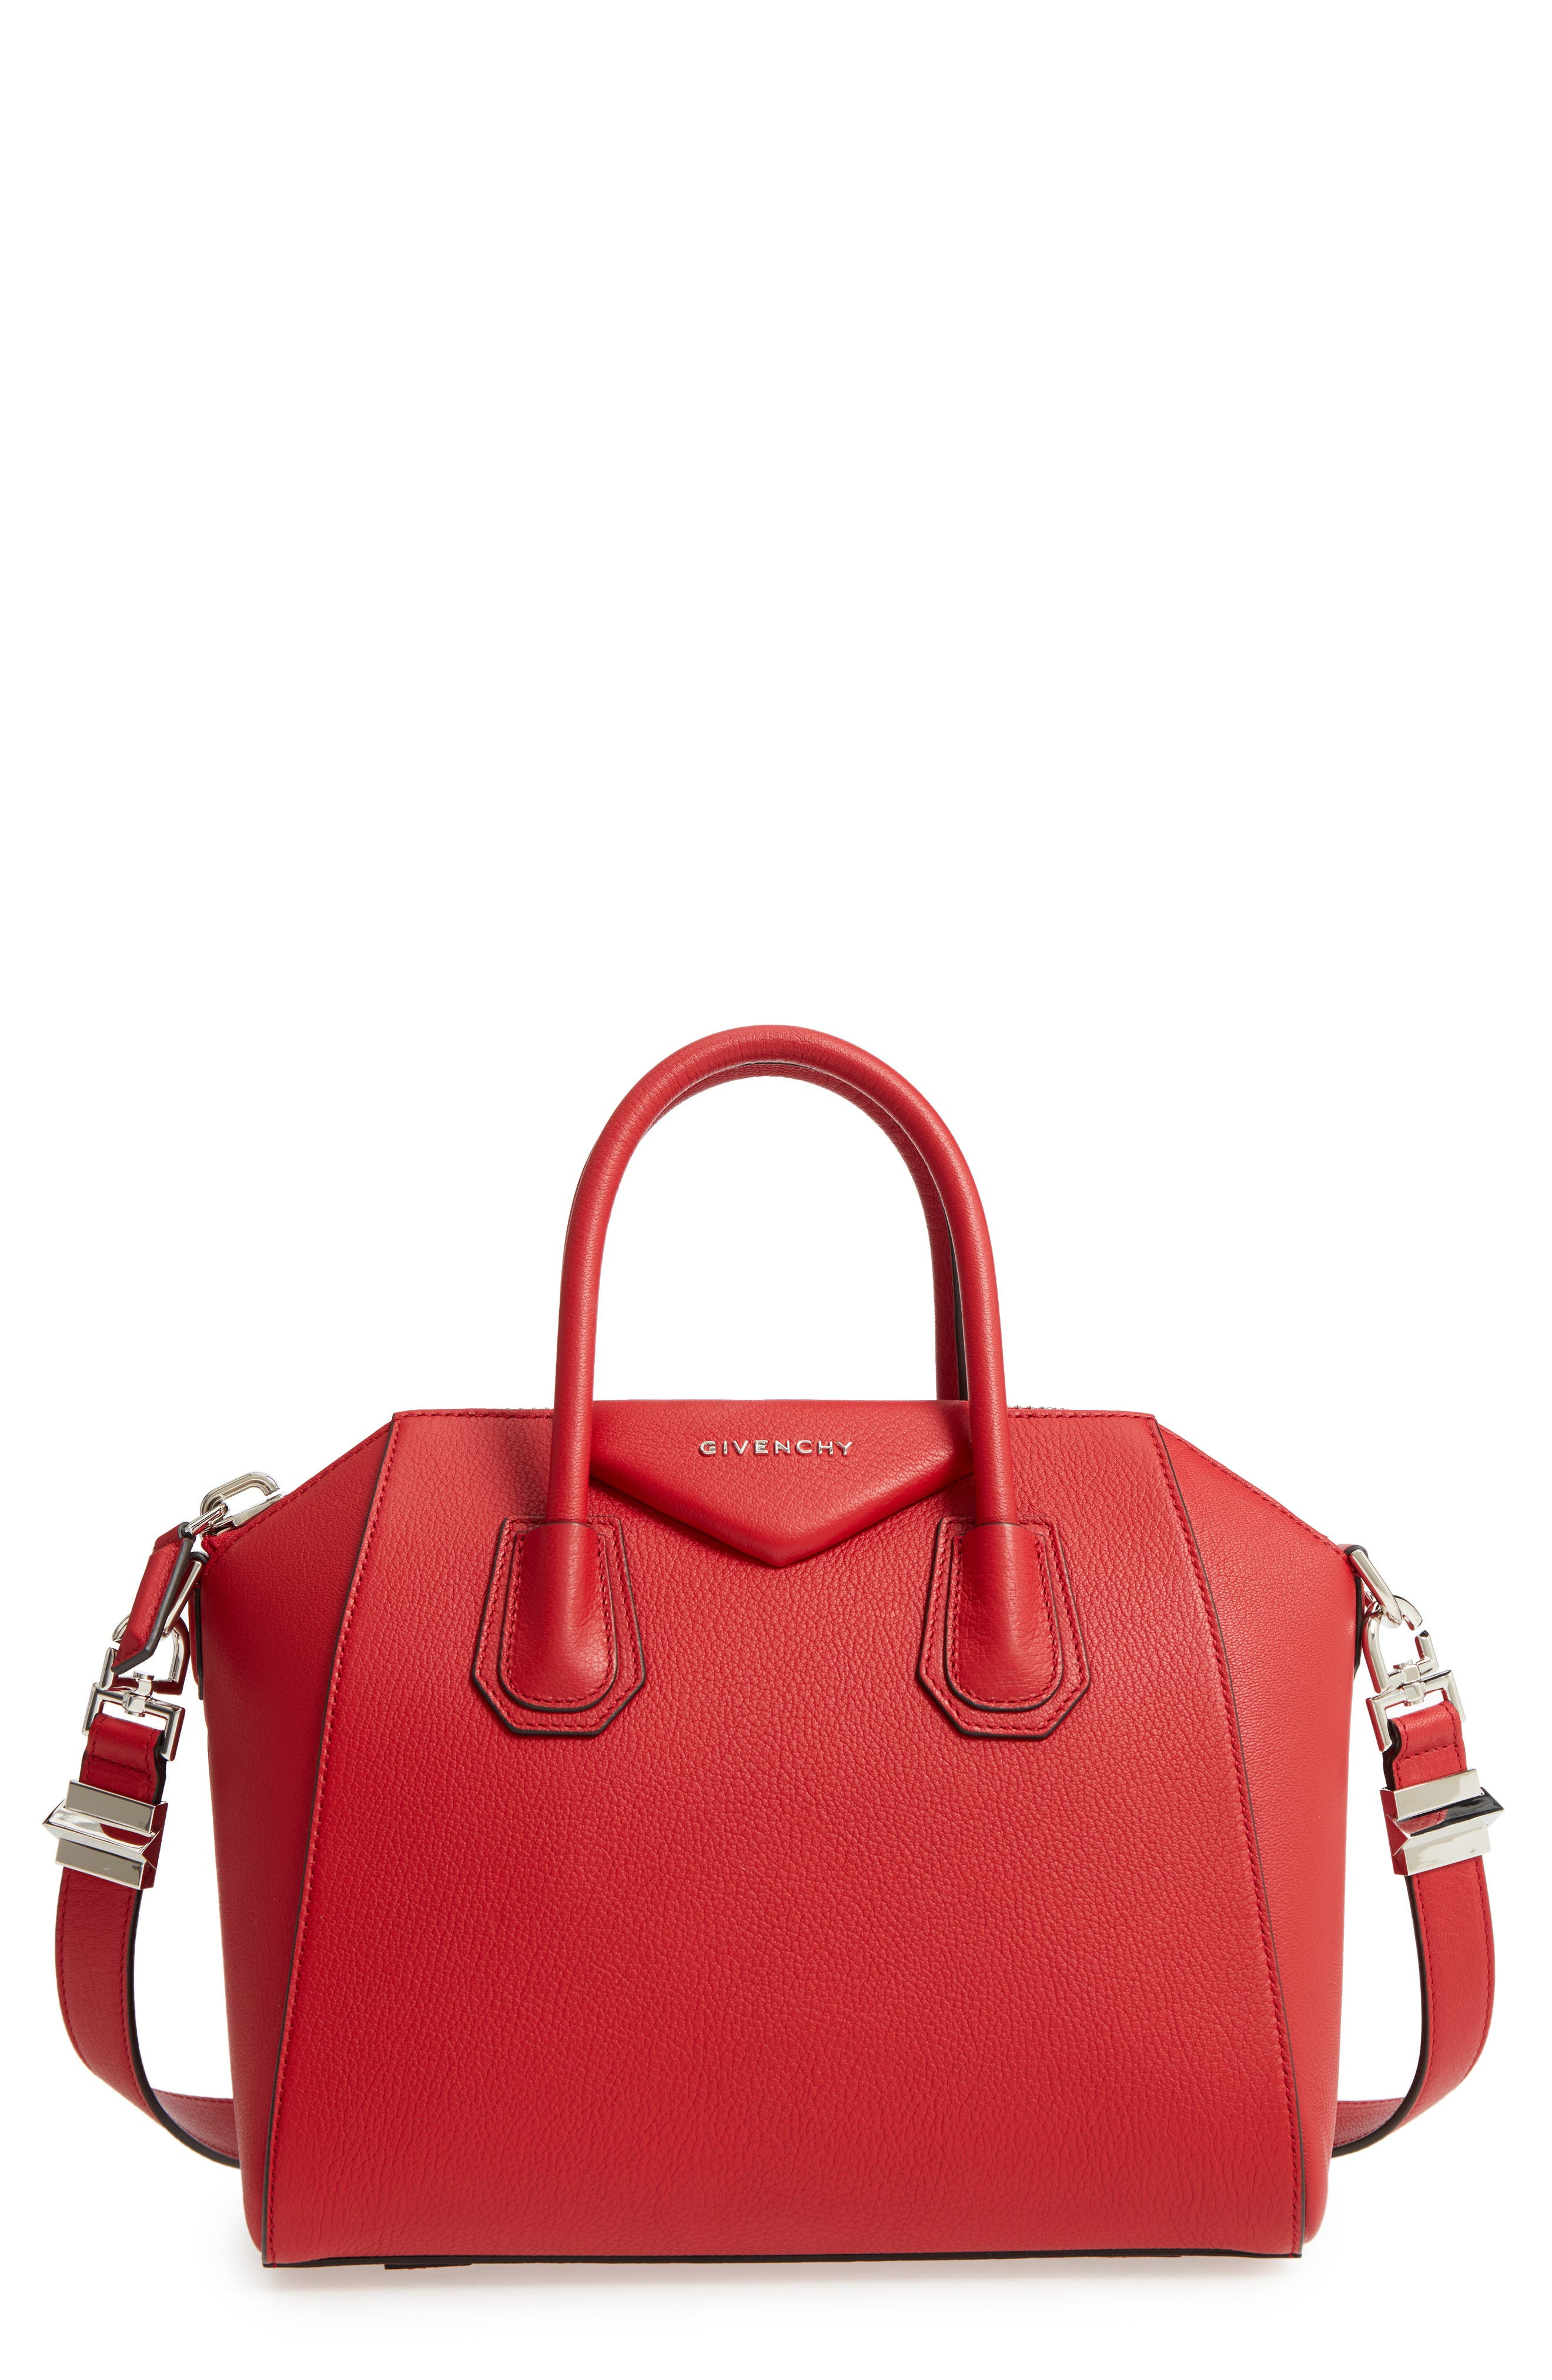 'Small Antigona' Leather Satchel,                         Main,                         color, Bright Red